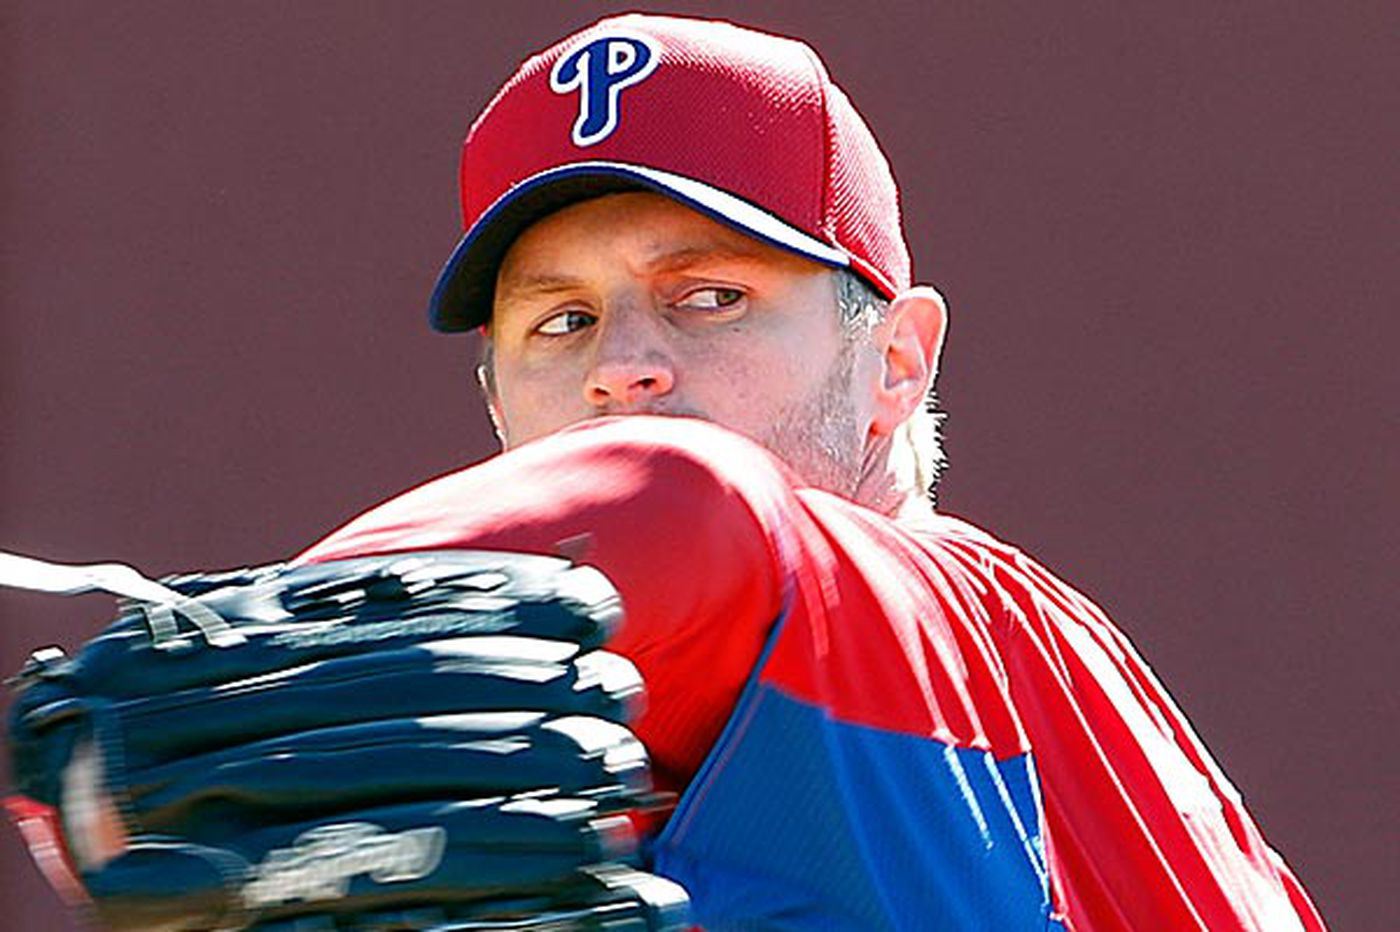 Kyle Kendrick will be fourth starter for Phillies